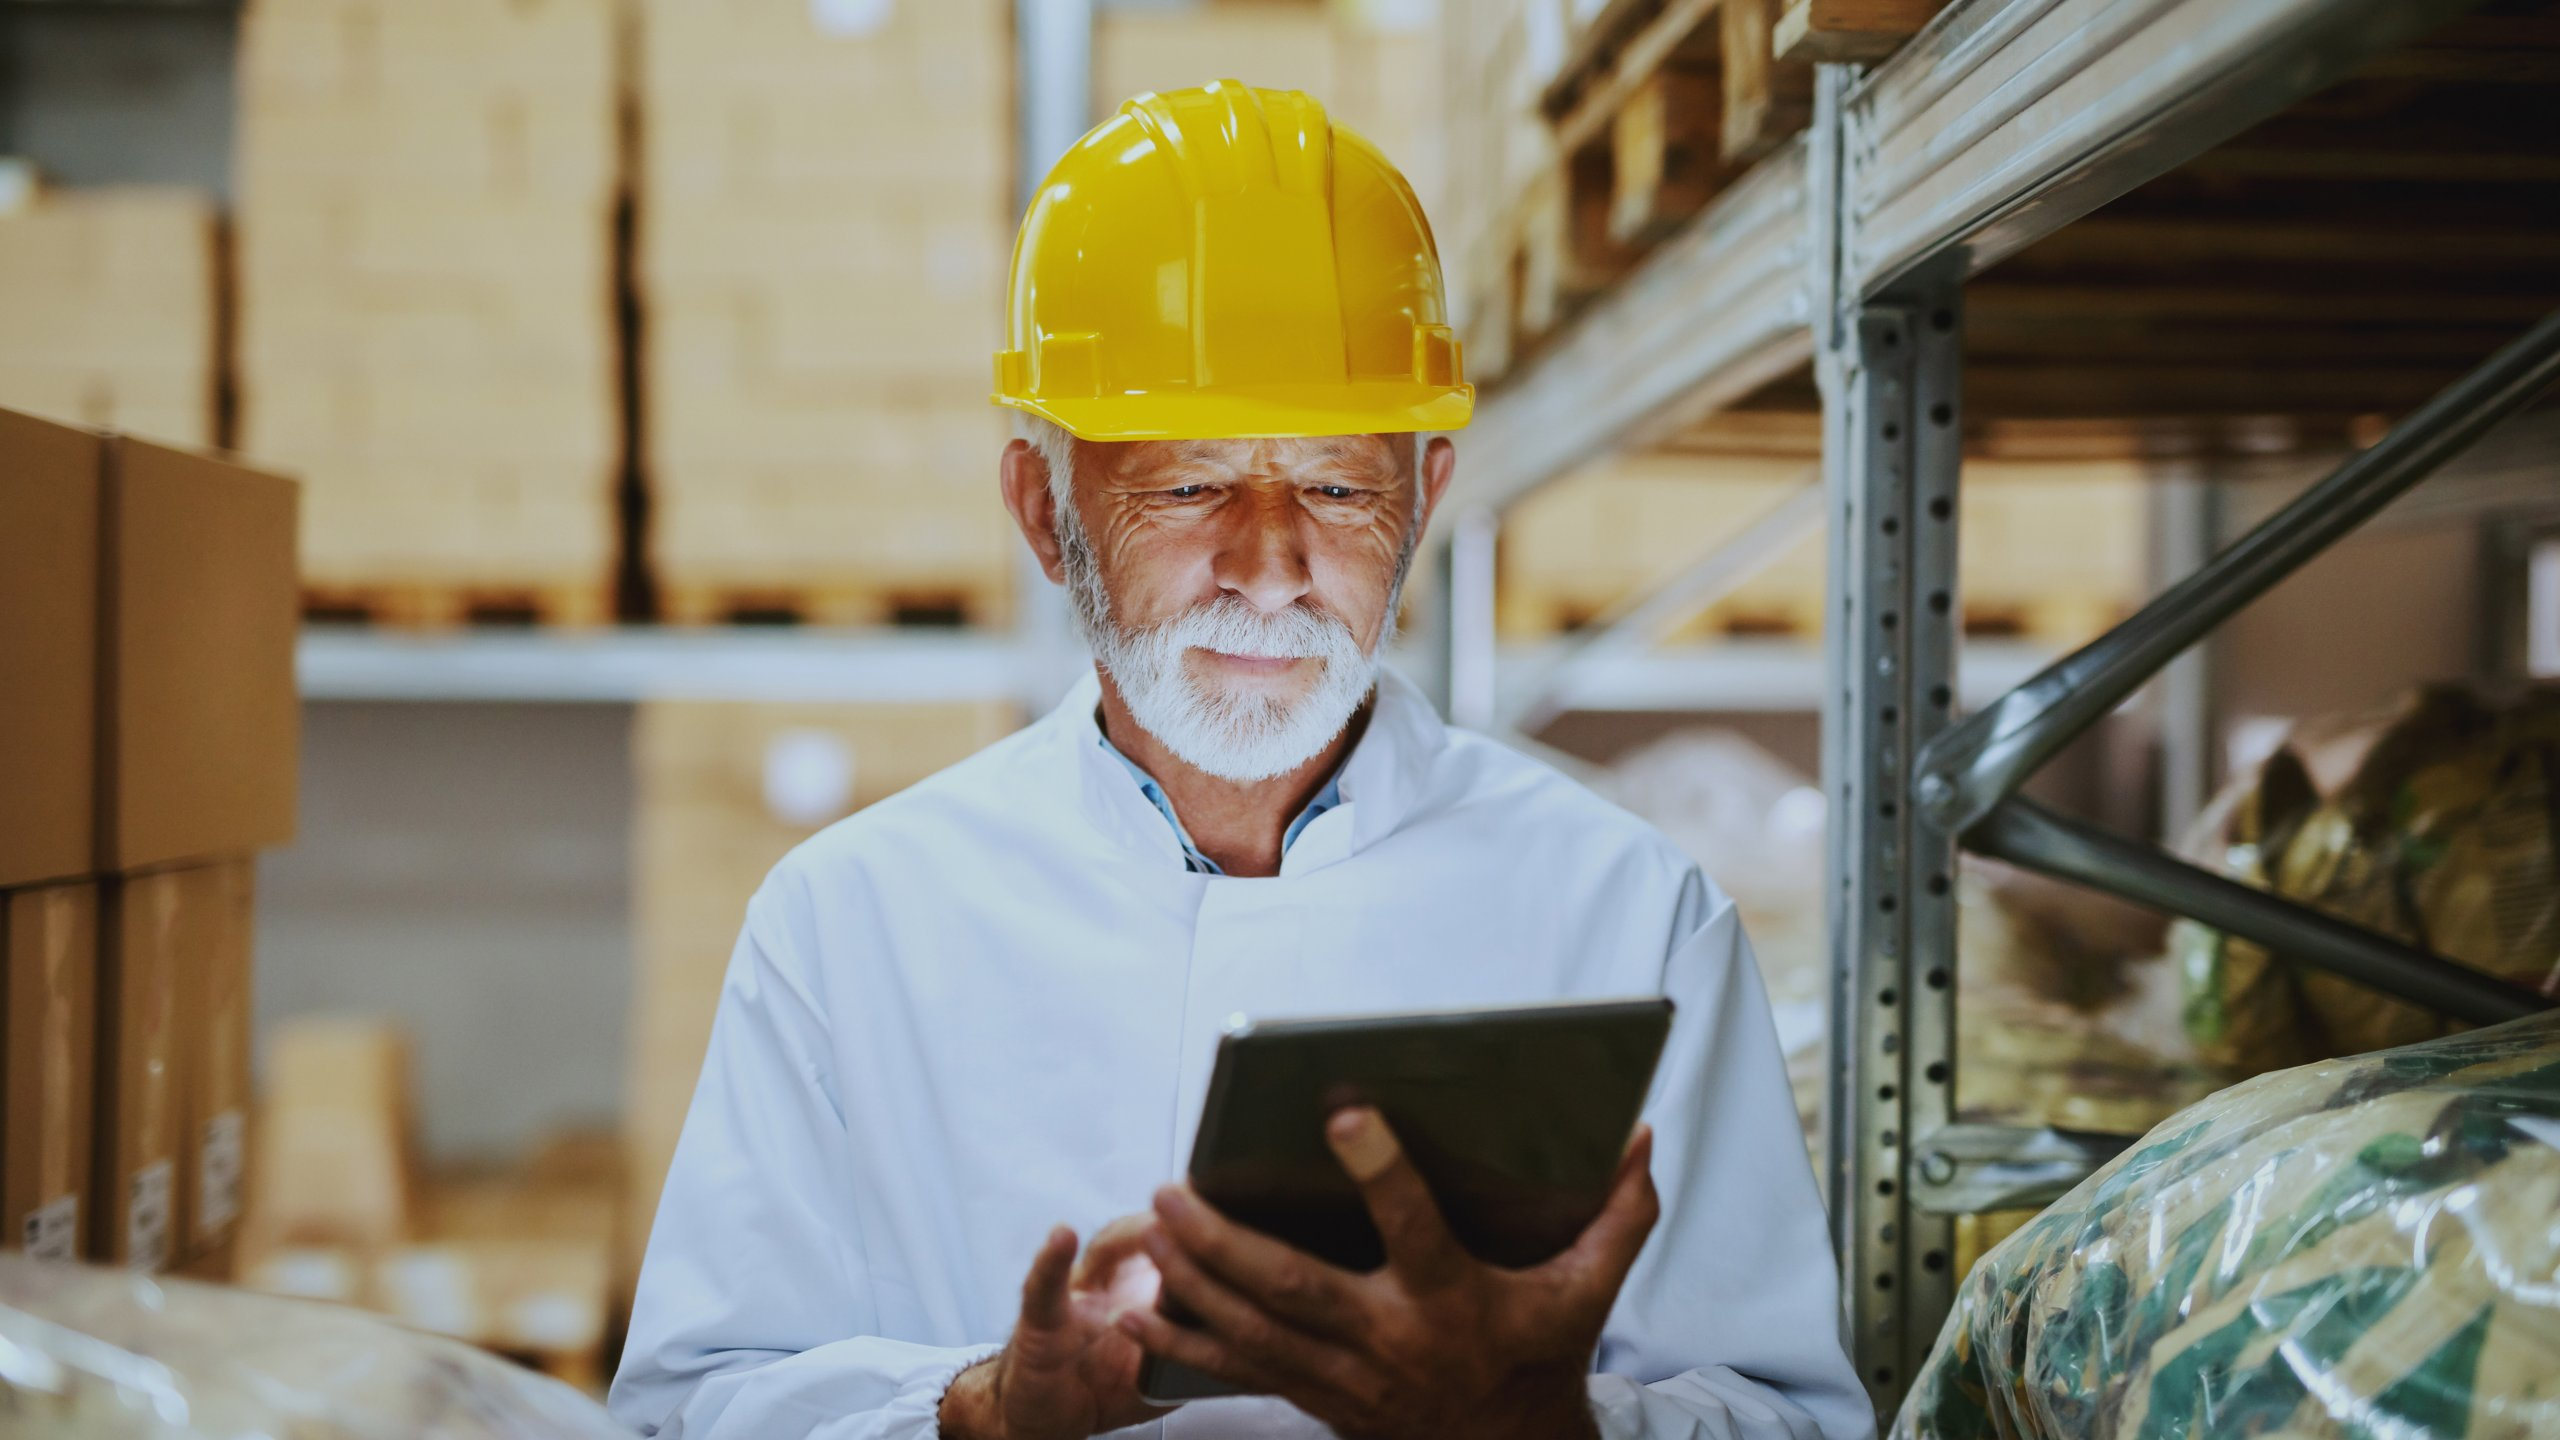 Caucasian senior adult employee in white uniform and with yellow helmet on head checking on goods in warehouse by using tablet.